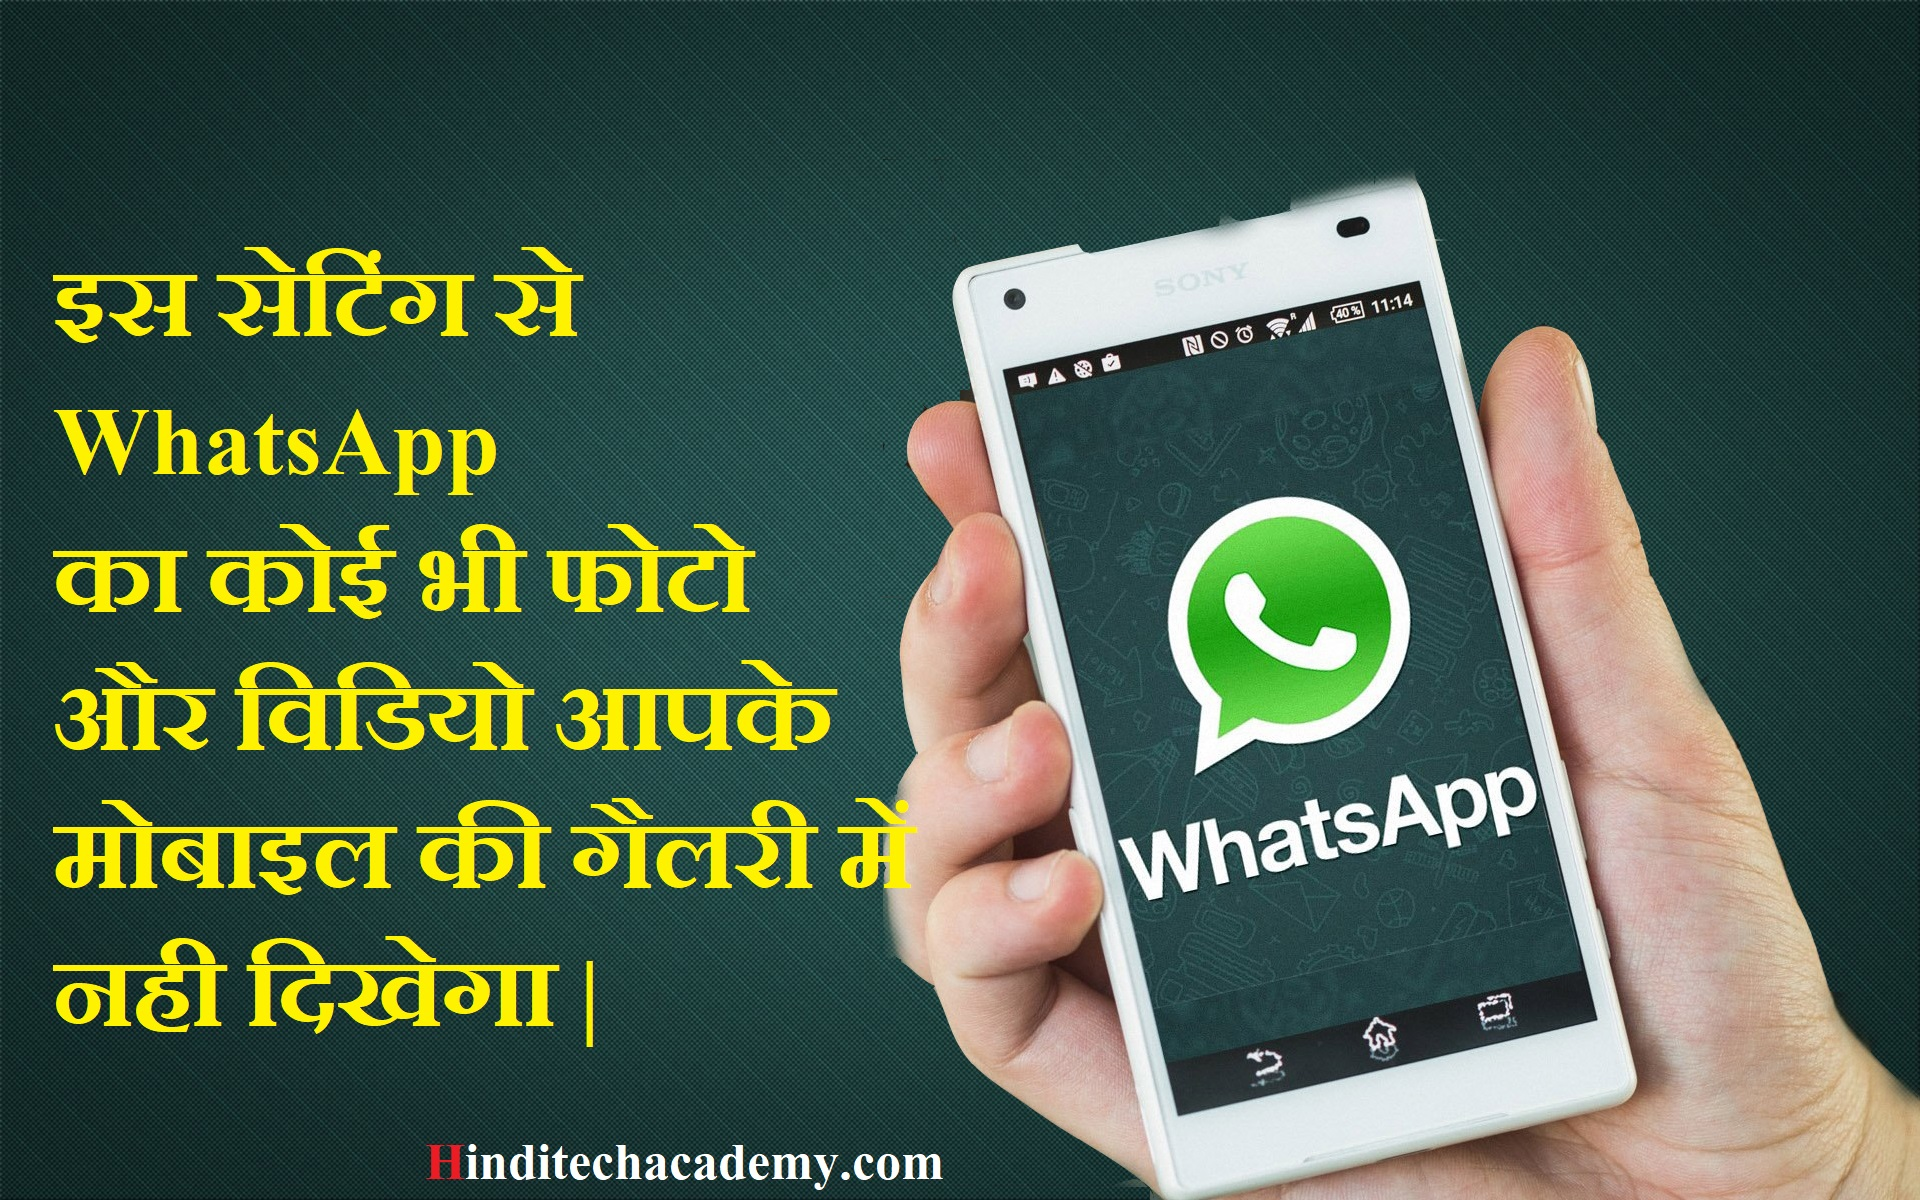 WhatsApp Photo aur Video ko Mobile ki Gallery se kaise Chhupaye